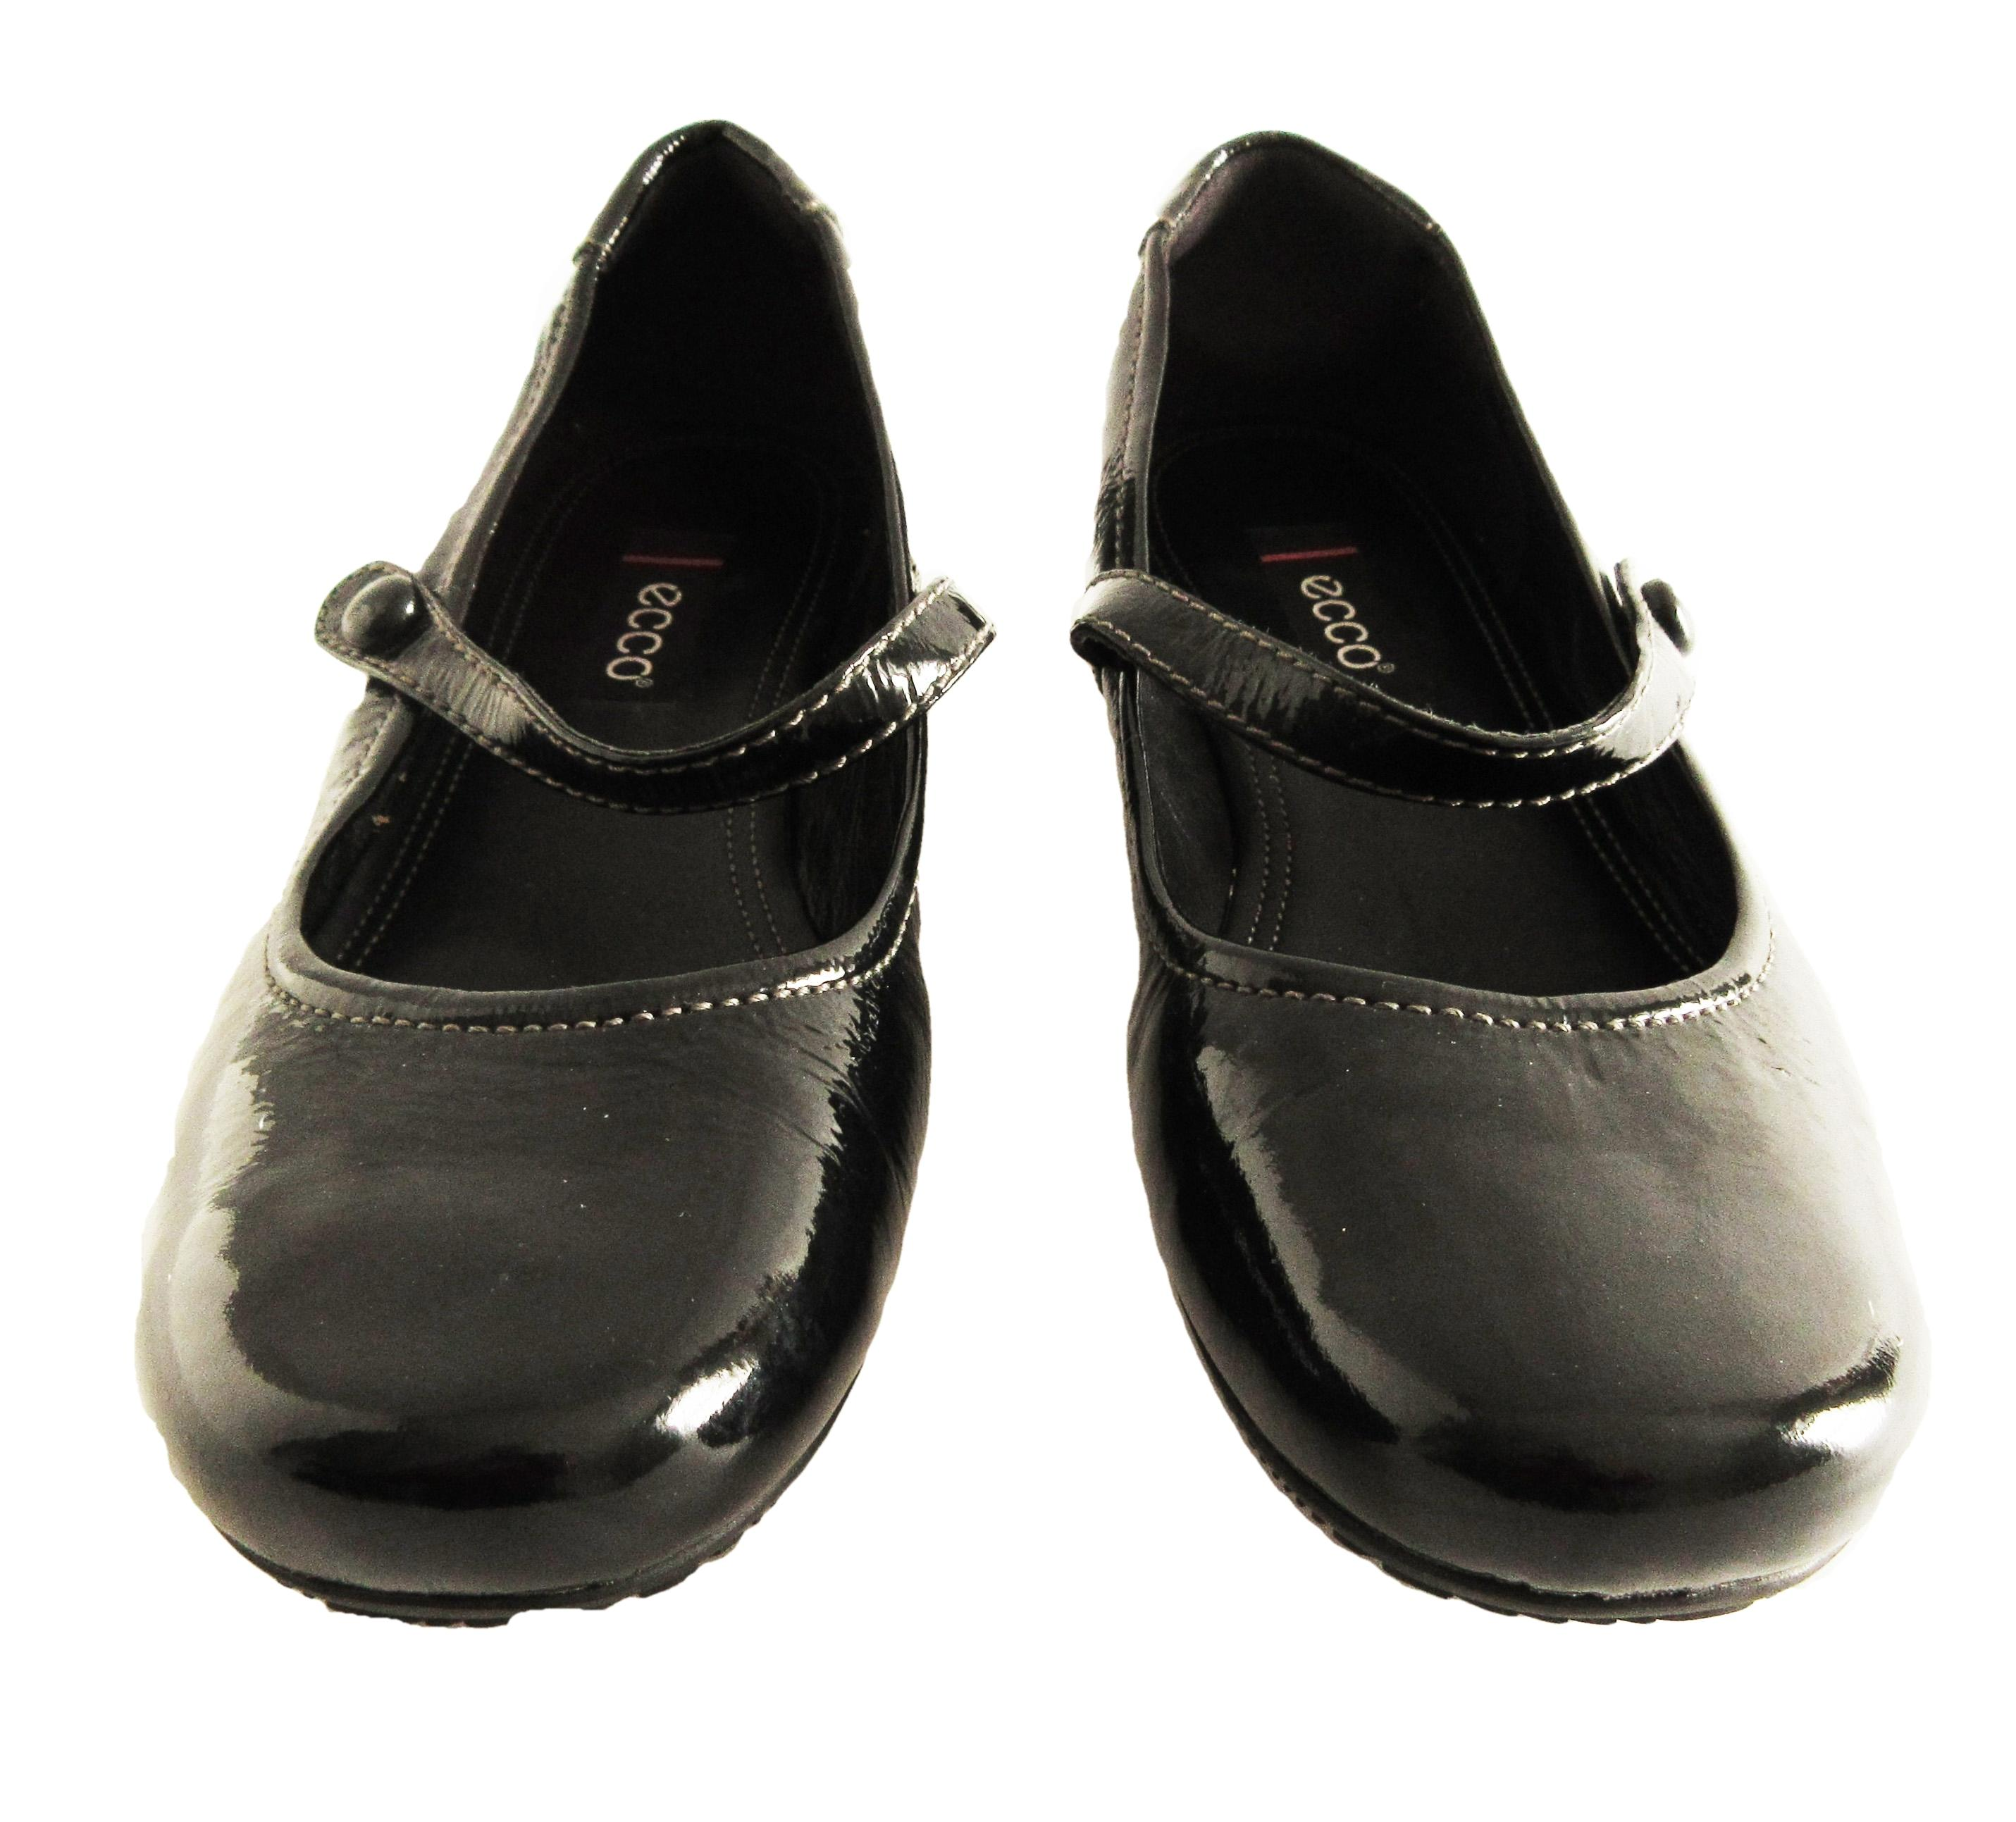 Ecco Patent Leather Mary Jane Black Flats ...